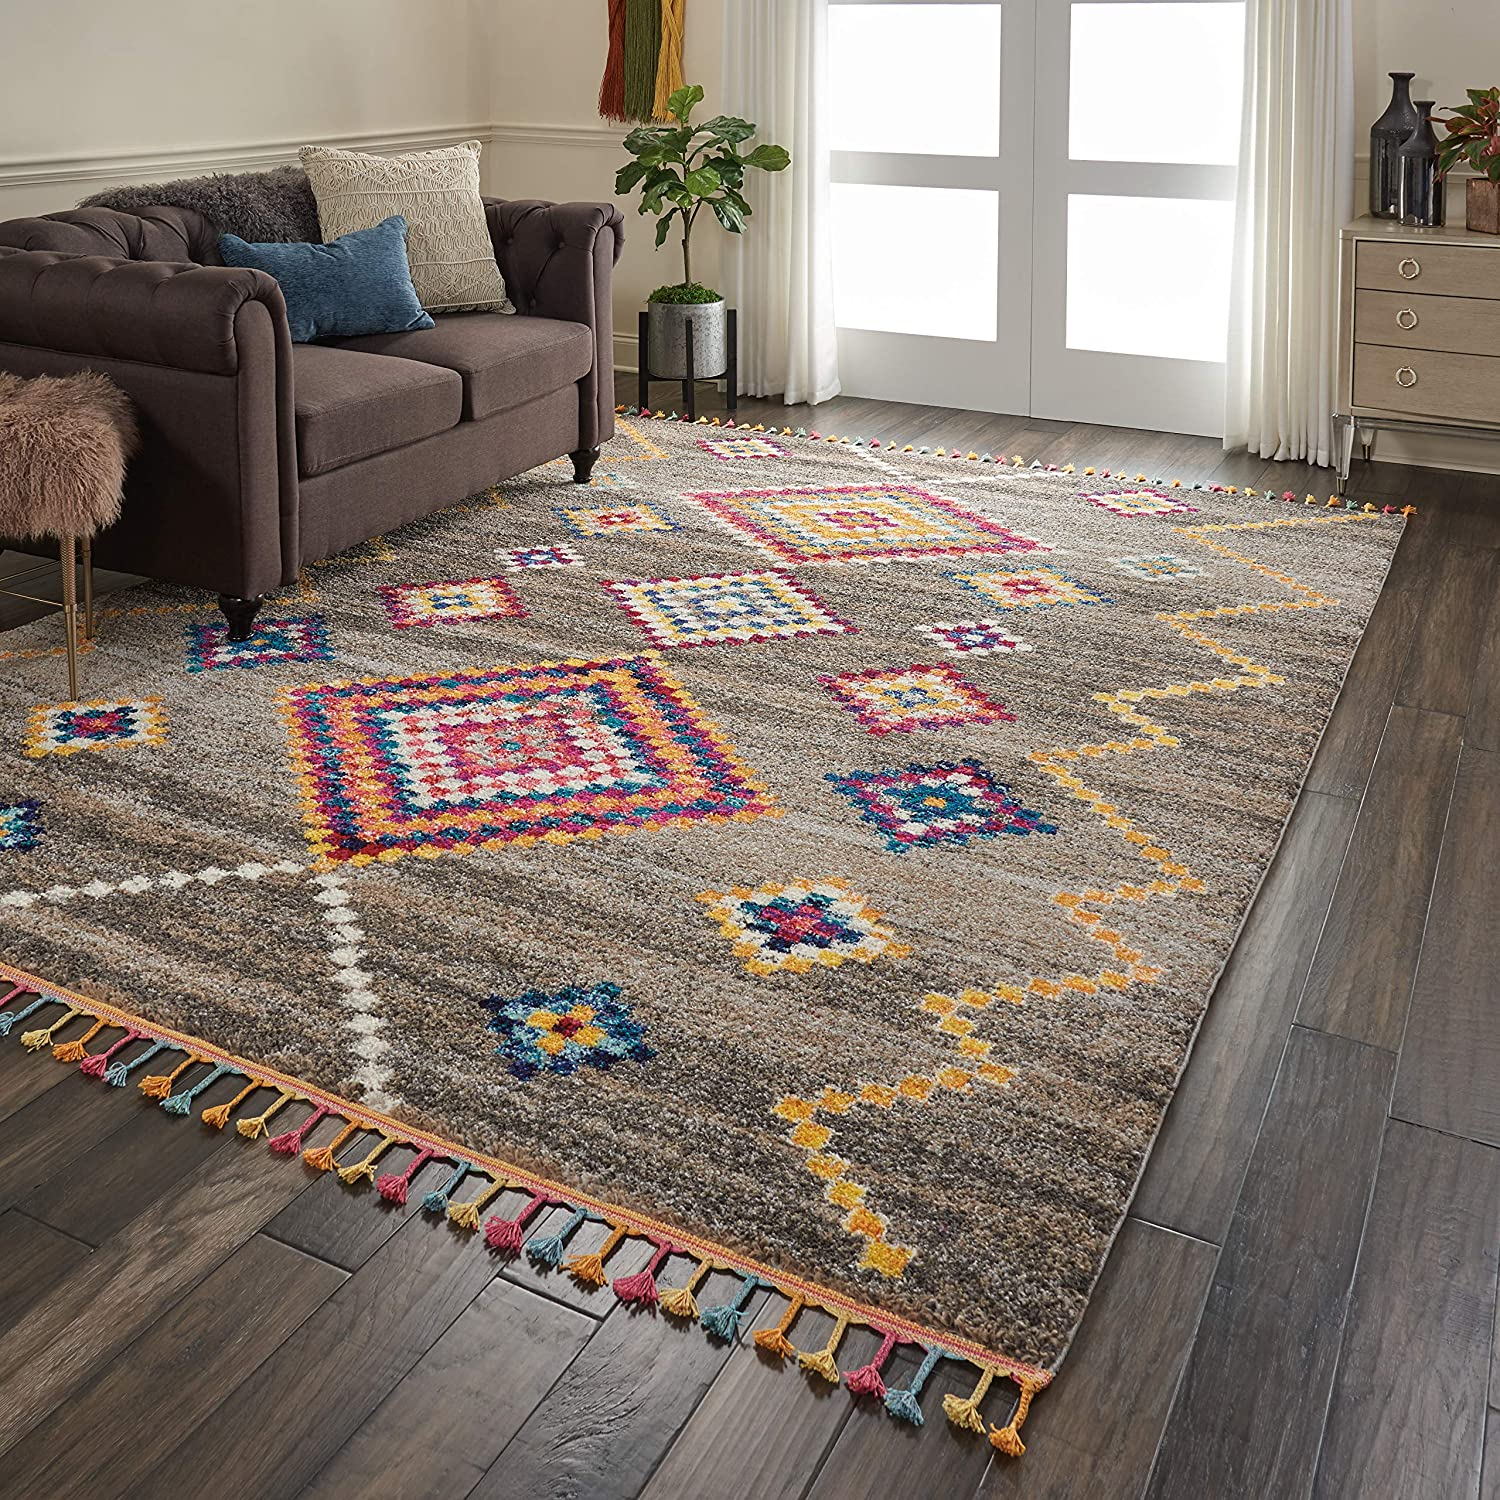 Furniture-around-area-rug